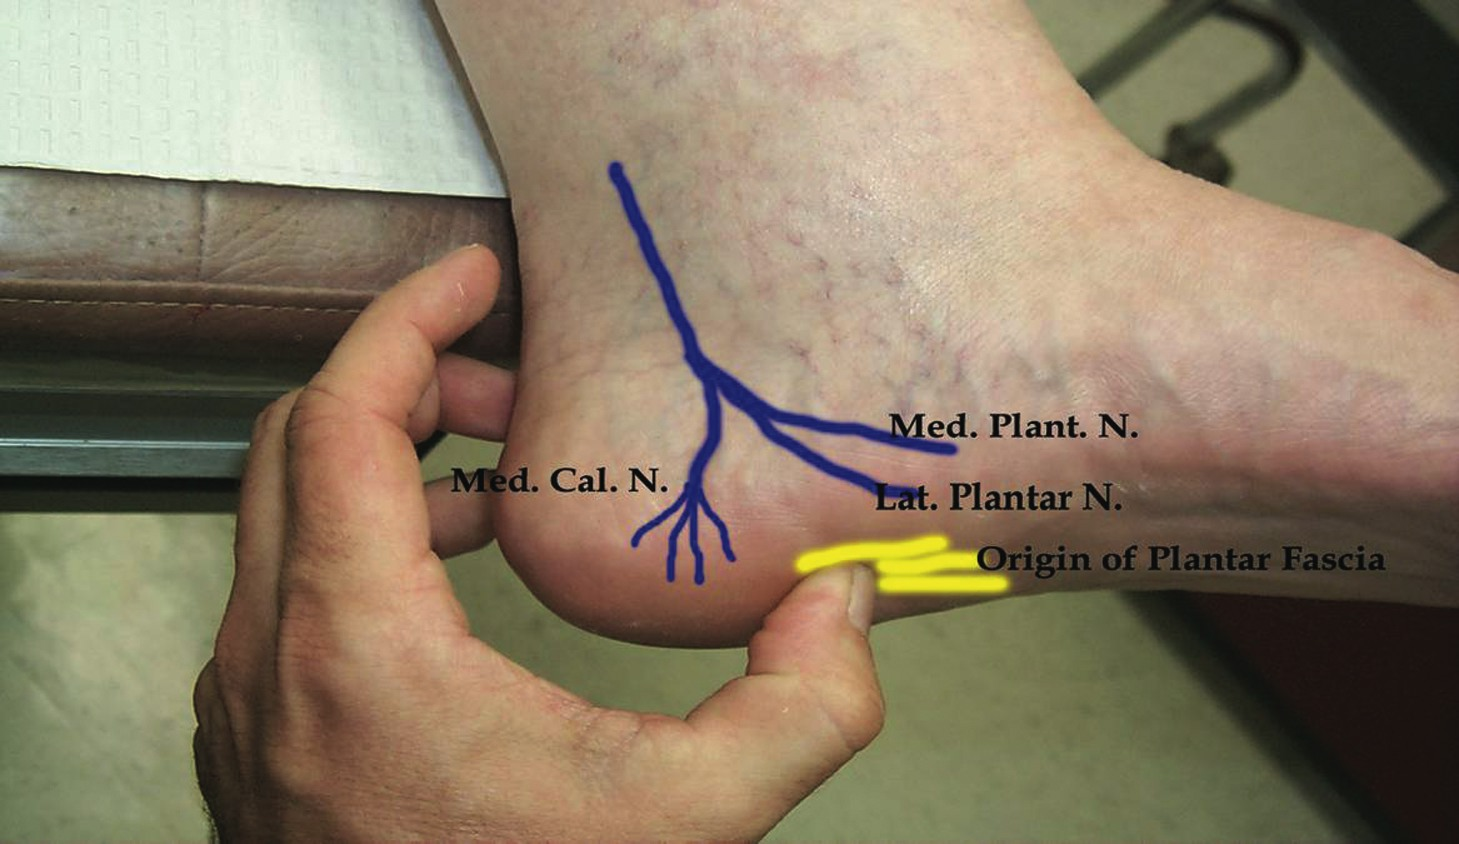 may have Tarsal Tunnel Syndrome and / or Medial Calcaneal Neuritis-1.bp.blogspot.com